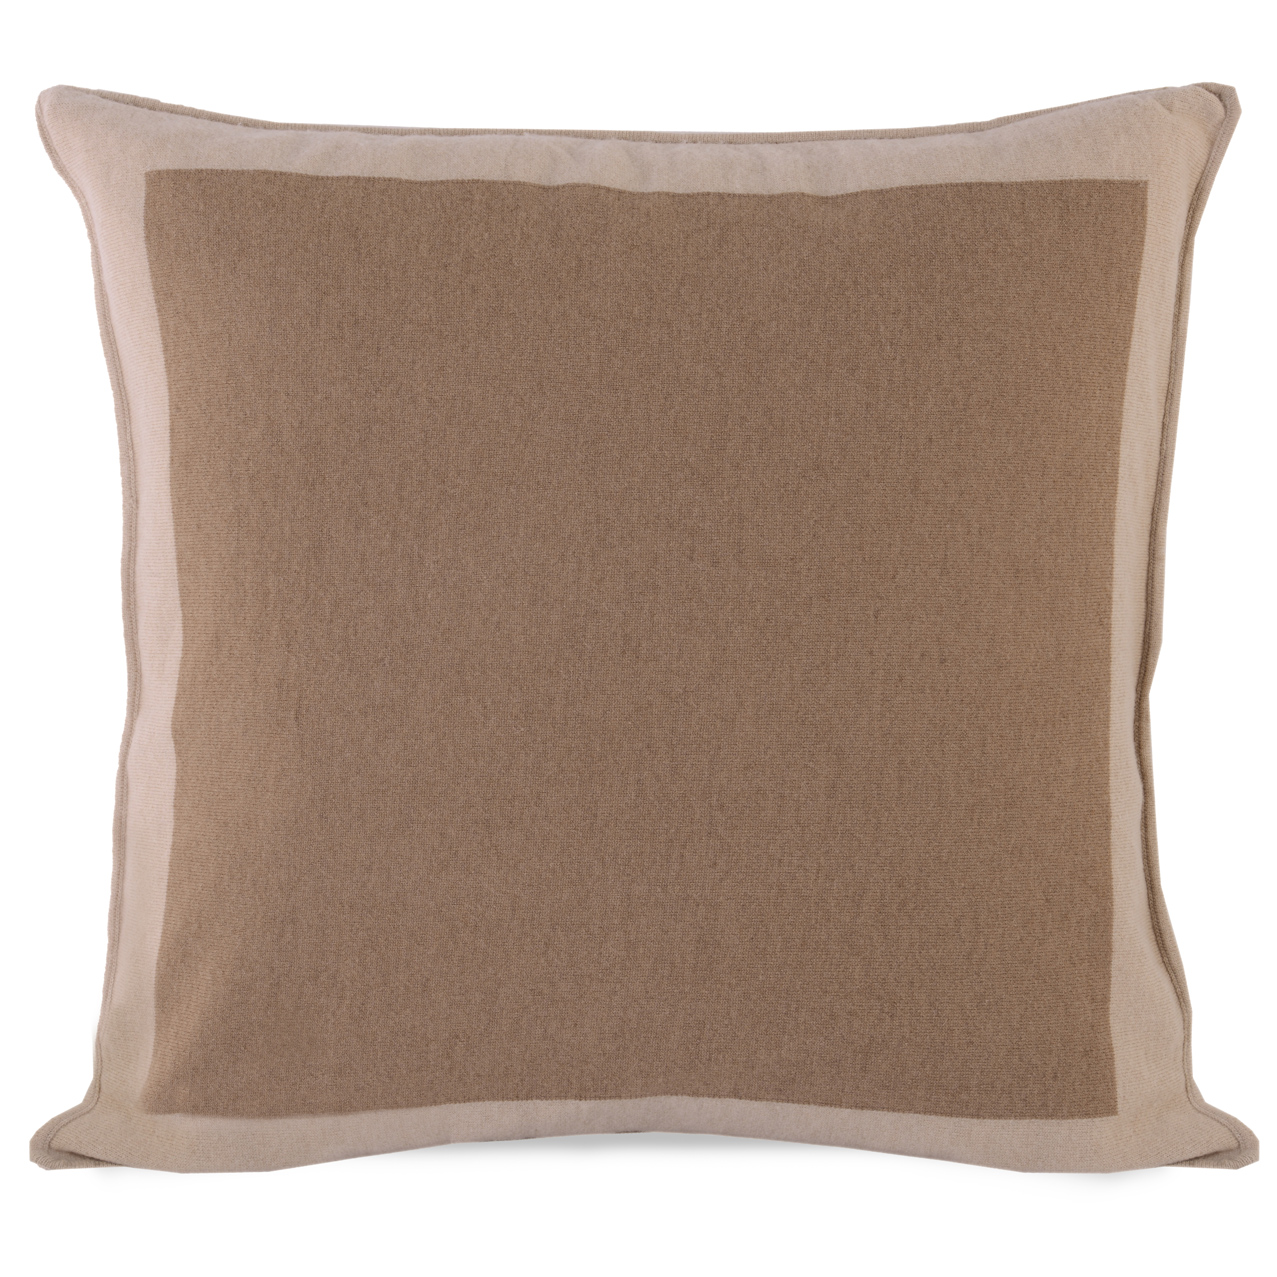 Stephie Classic Brown Bordered Camel Hair Pillow - 22x22